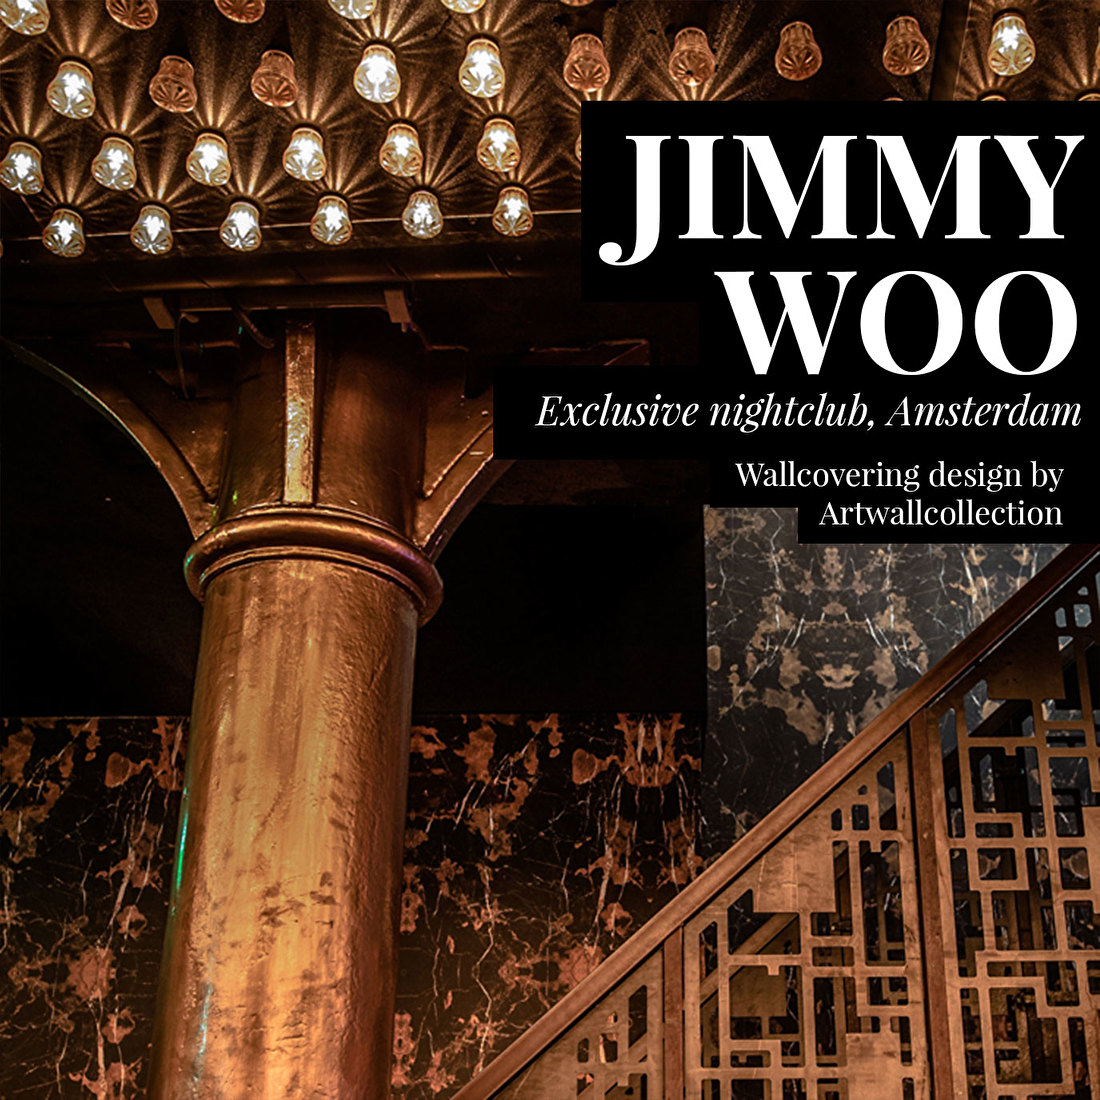 jimmy woo nightclub amsterdam